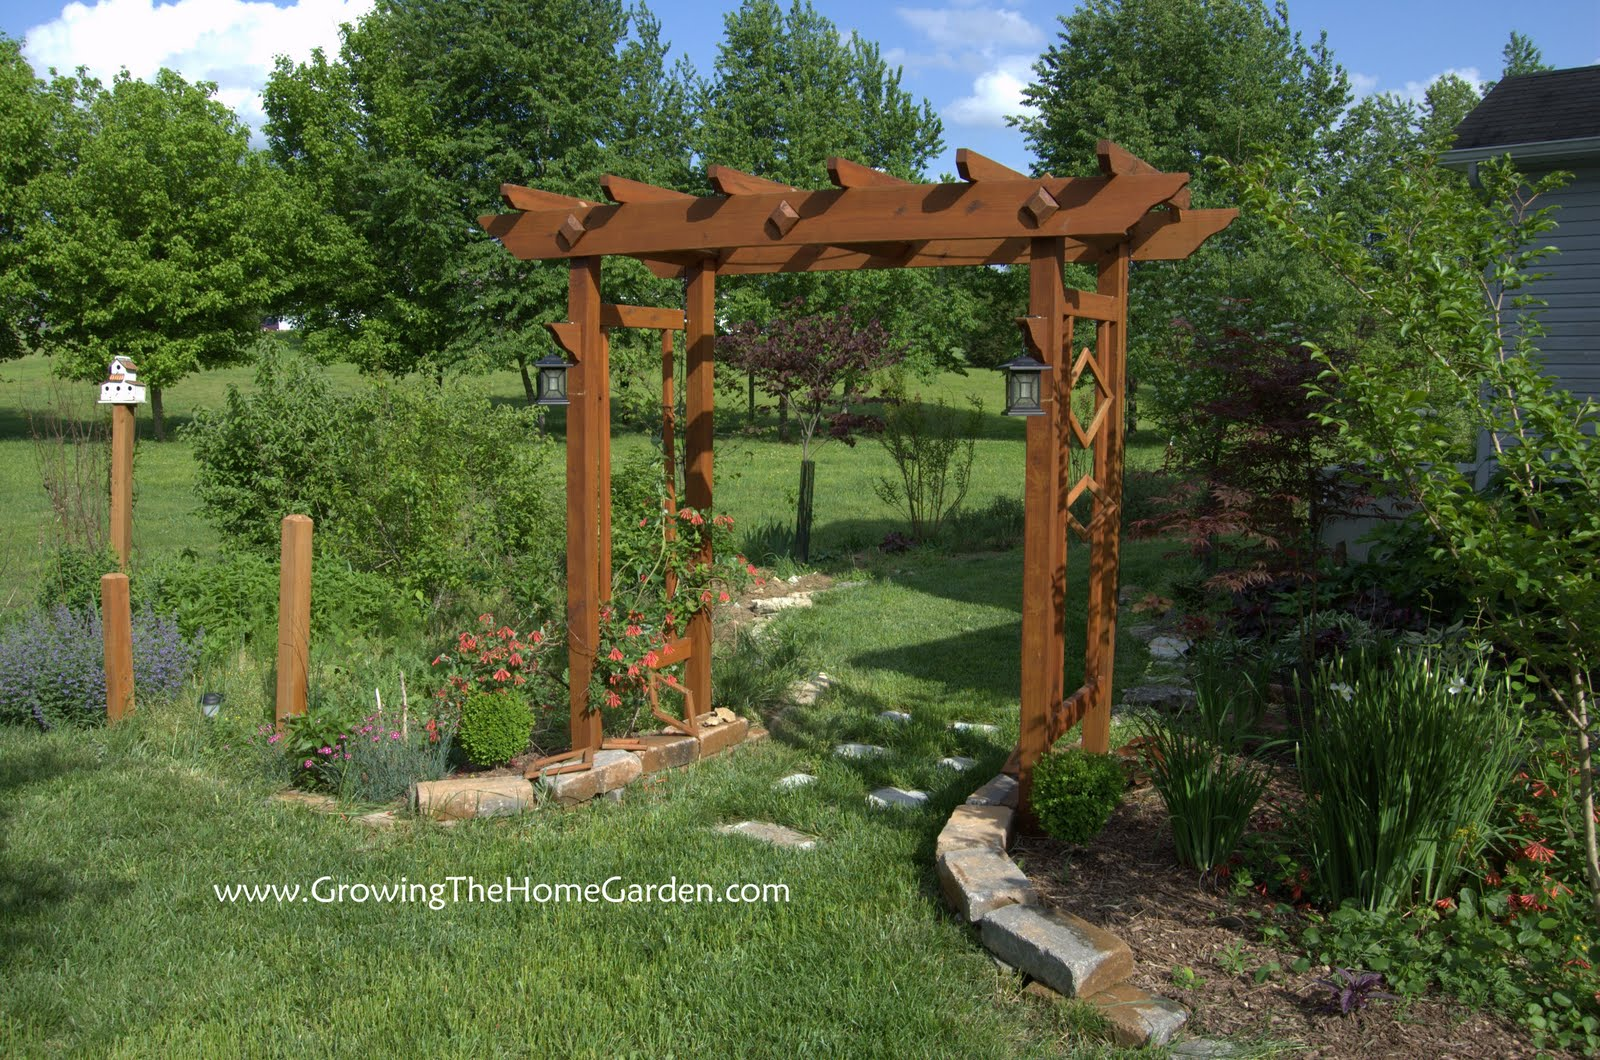 16 Best Garden Split Rail Fence Images On Pinterest | Gardens, Gardening  And Garden Beds